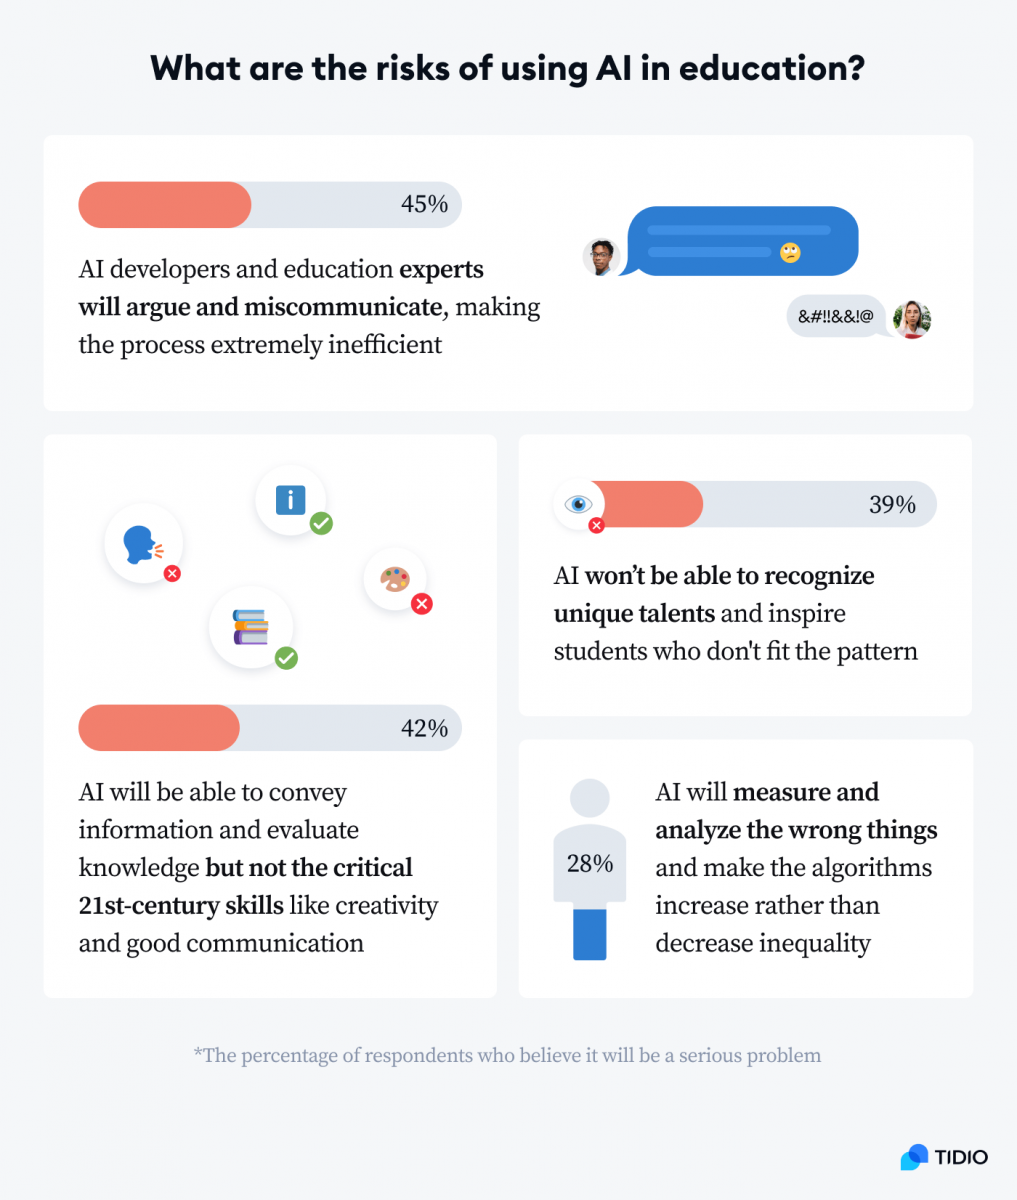 An infographic showing statistics on the risks of using AI in education